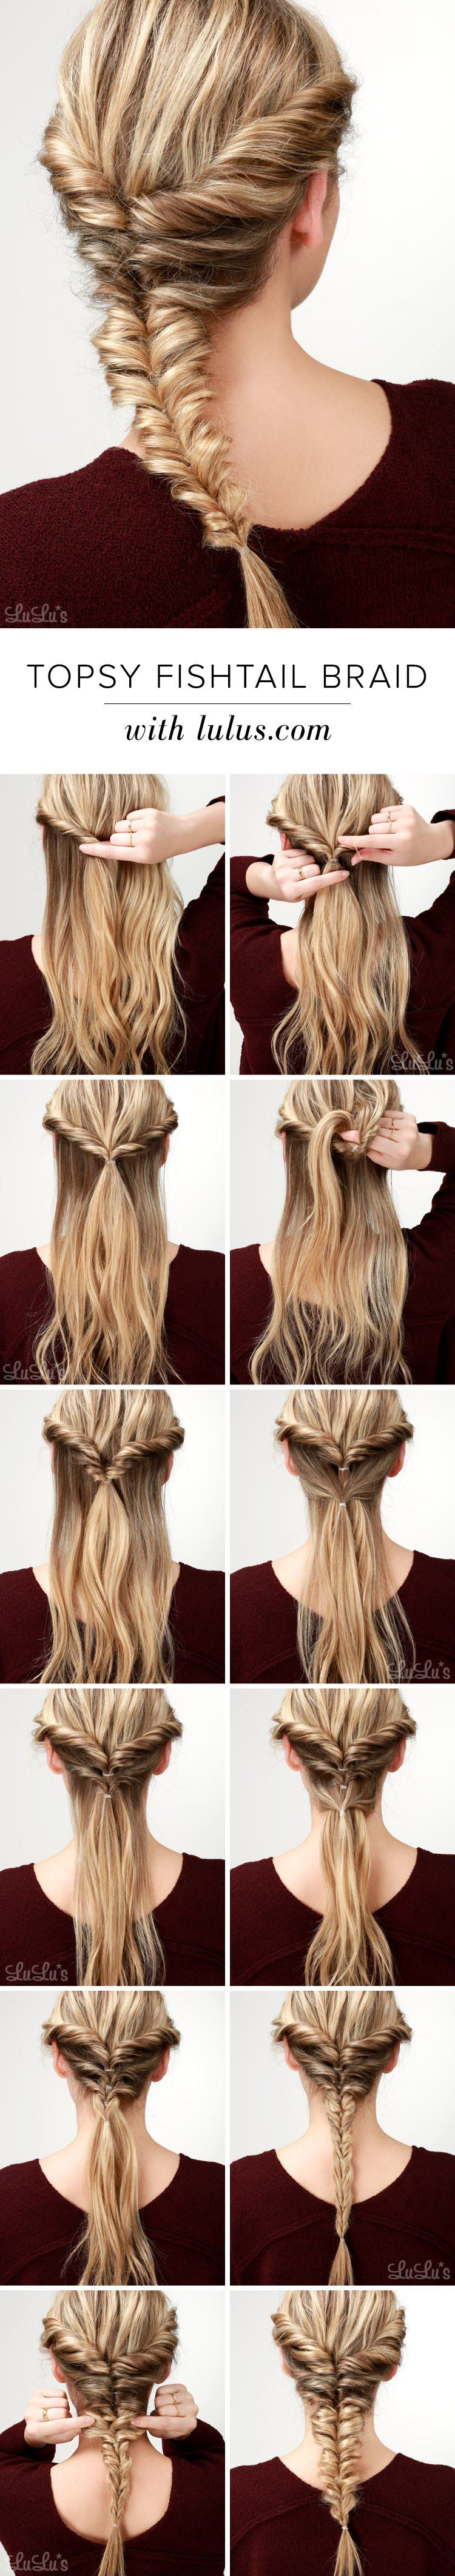 10 Simple And Easy Lazy Girl Hairstyle Tips That Are Done In Less Time Hair Styles Fish Tail Braid Tutorial Cool Braid Hairstyles